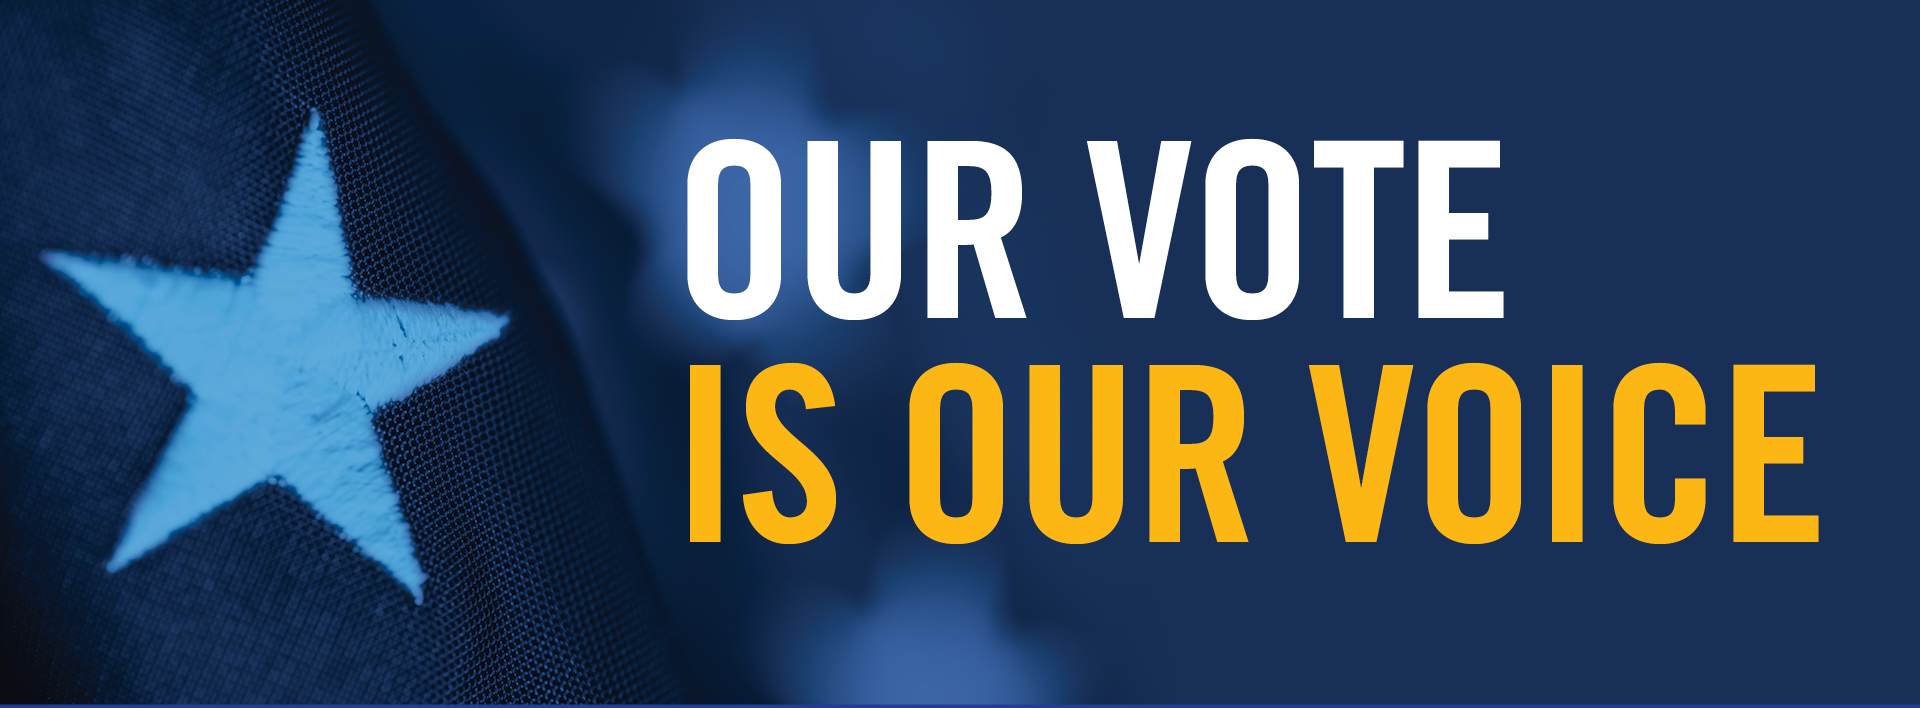 Our Vote is Our Voice banner